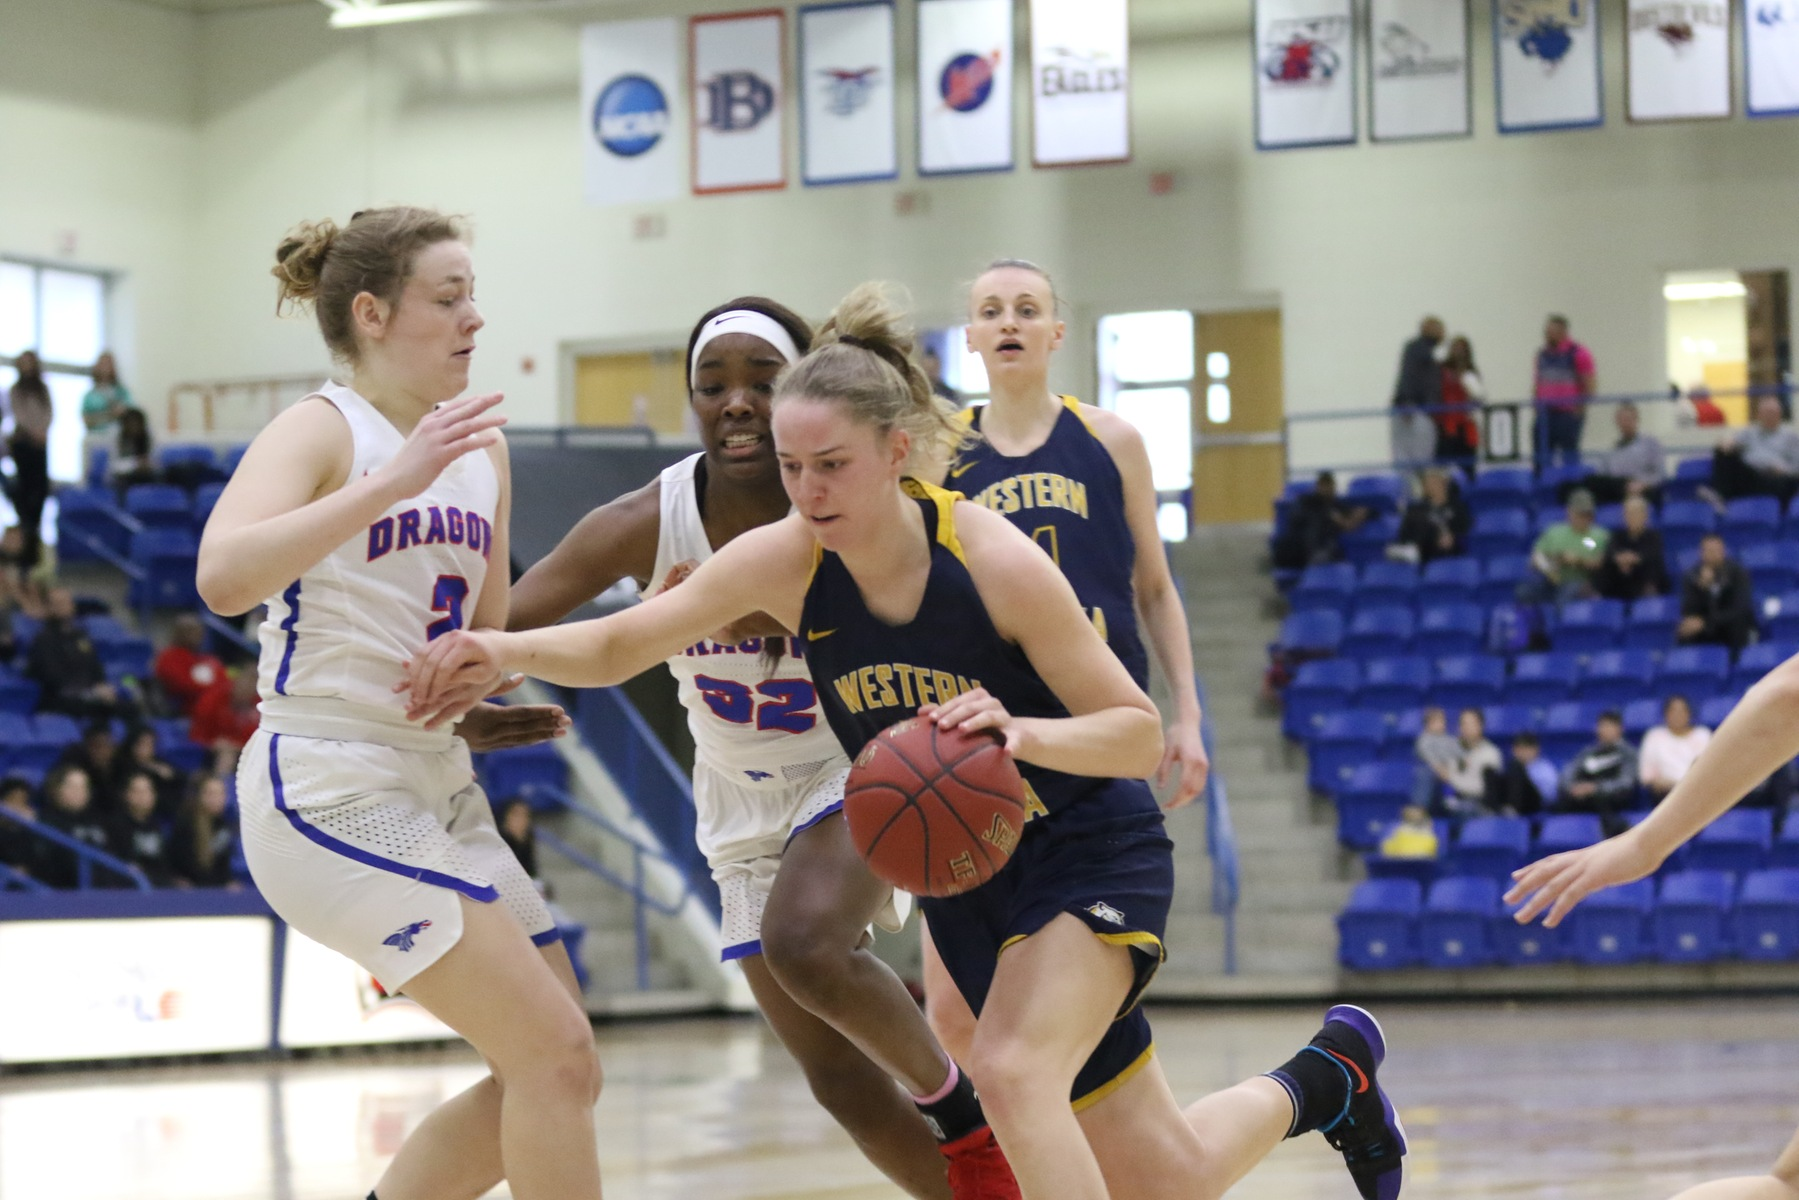 WNCC falls to Hutch at nationals, ends season at 29-4